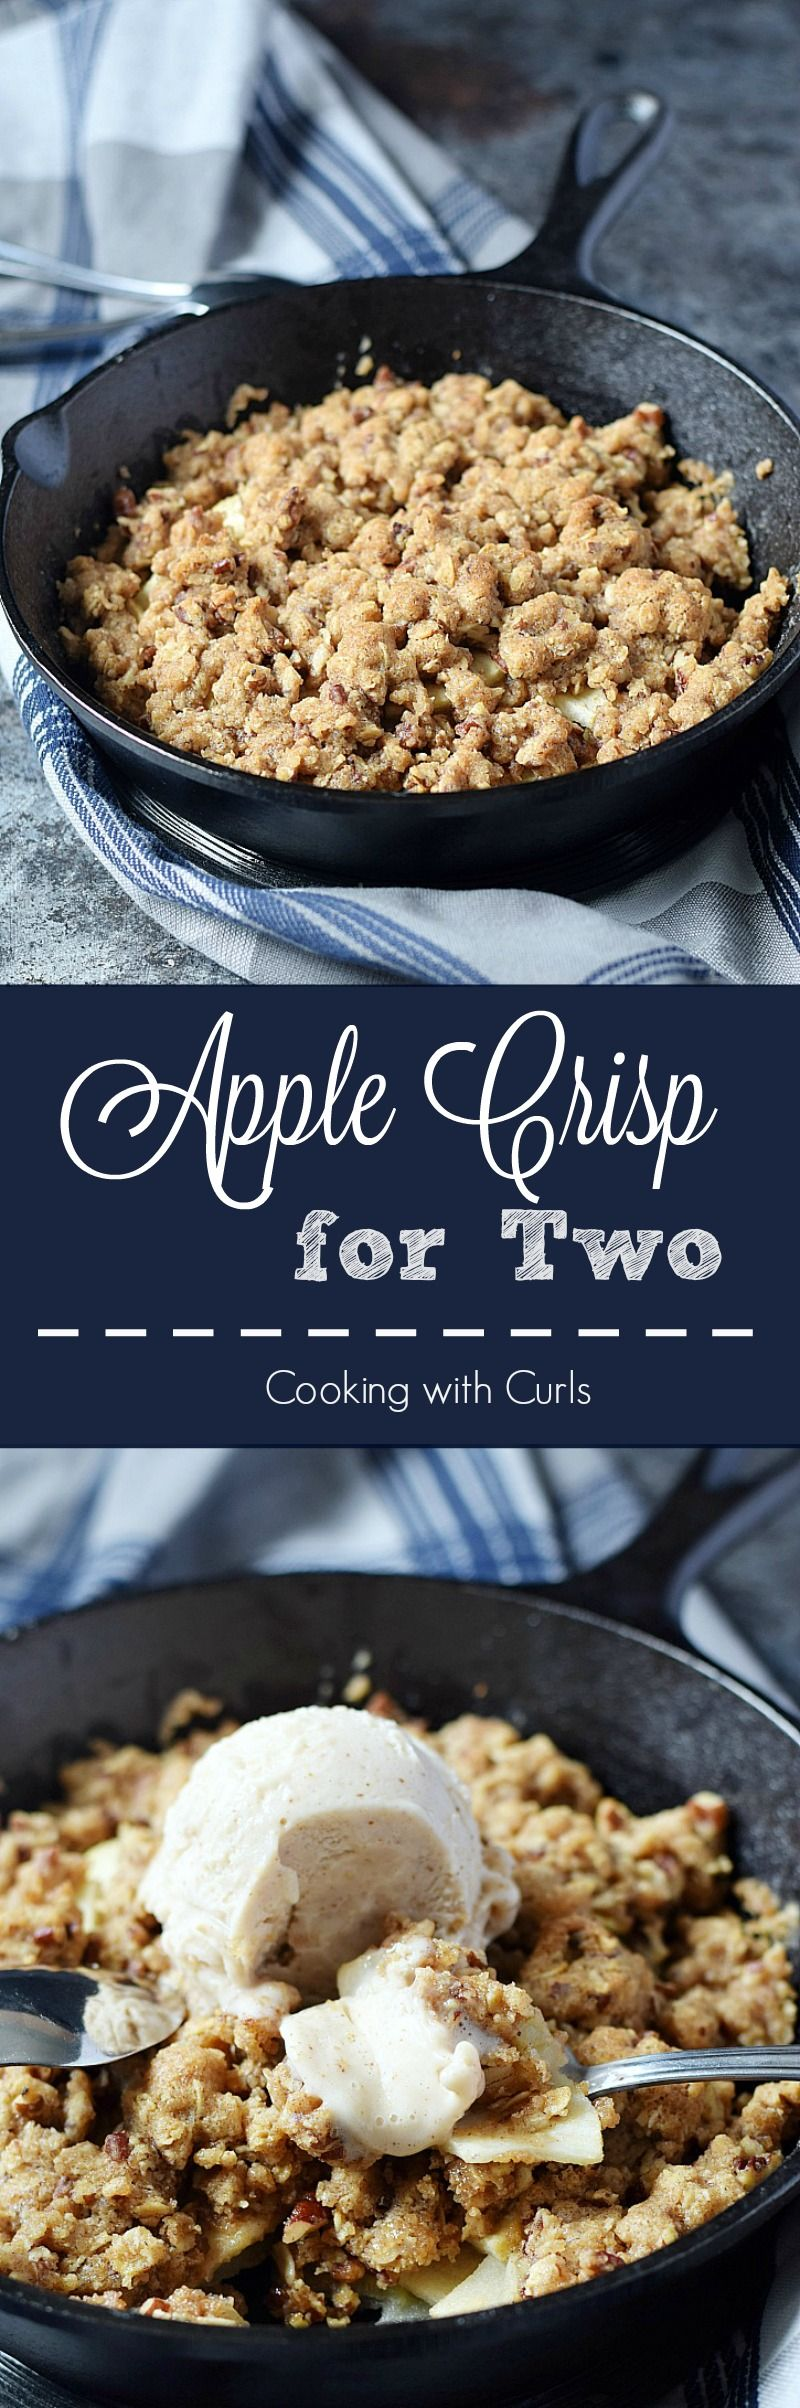 Warm and delicious Apple Crisp for Two served with a scoop of vanilla ice cream for the perfect sized dessert   cookingwithcurls.com